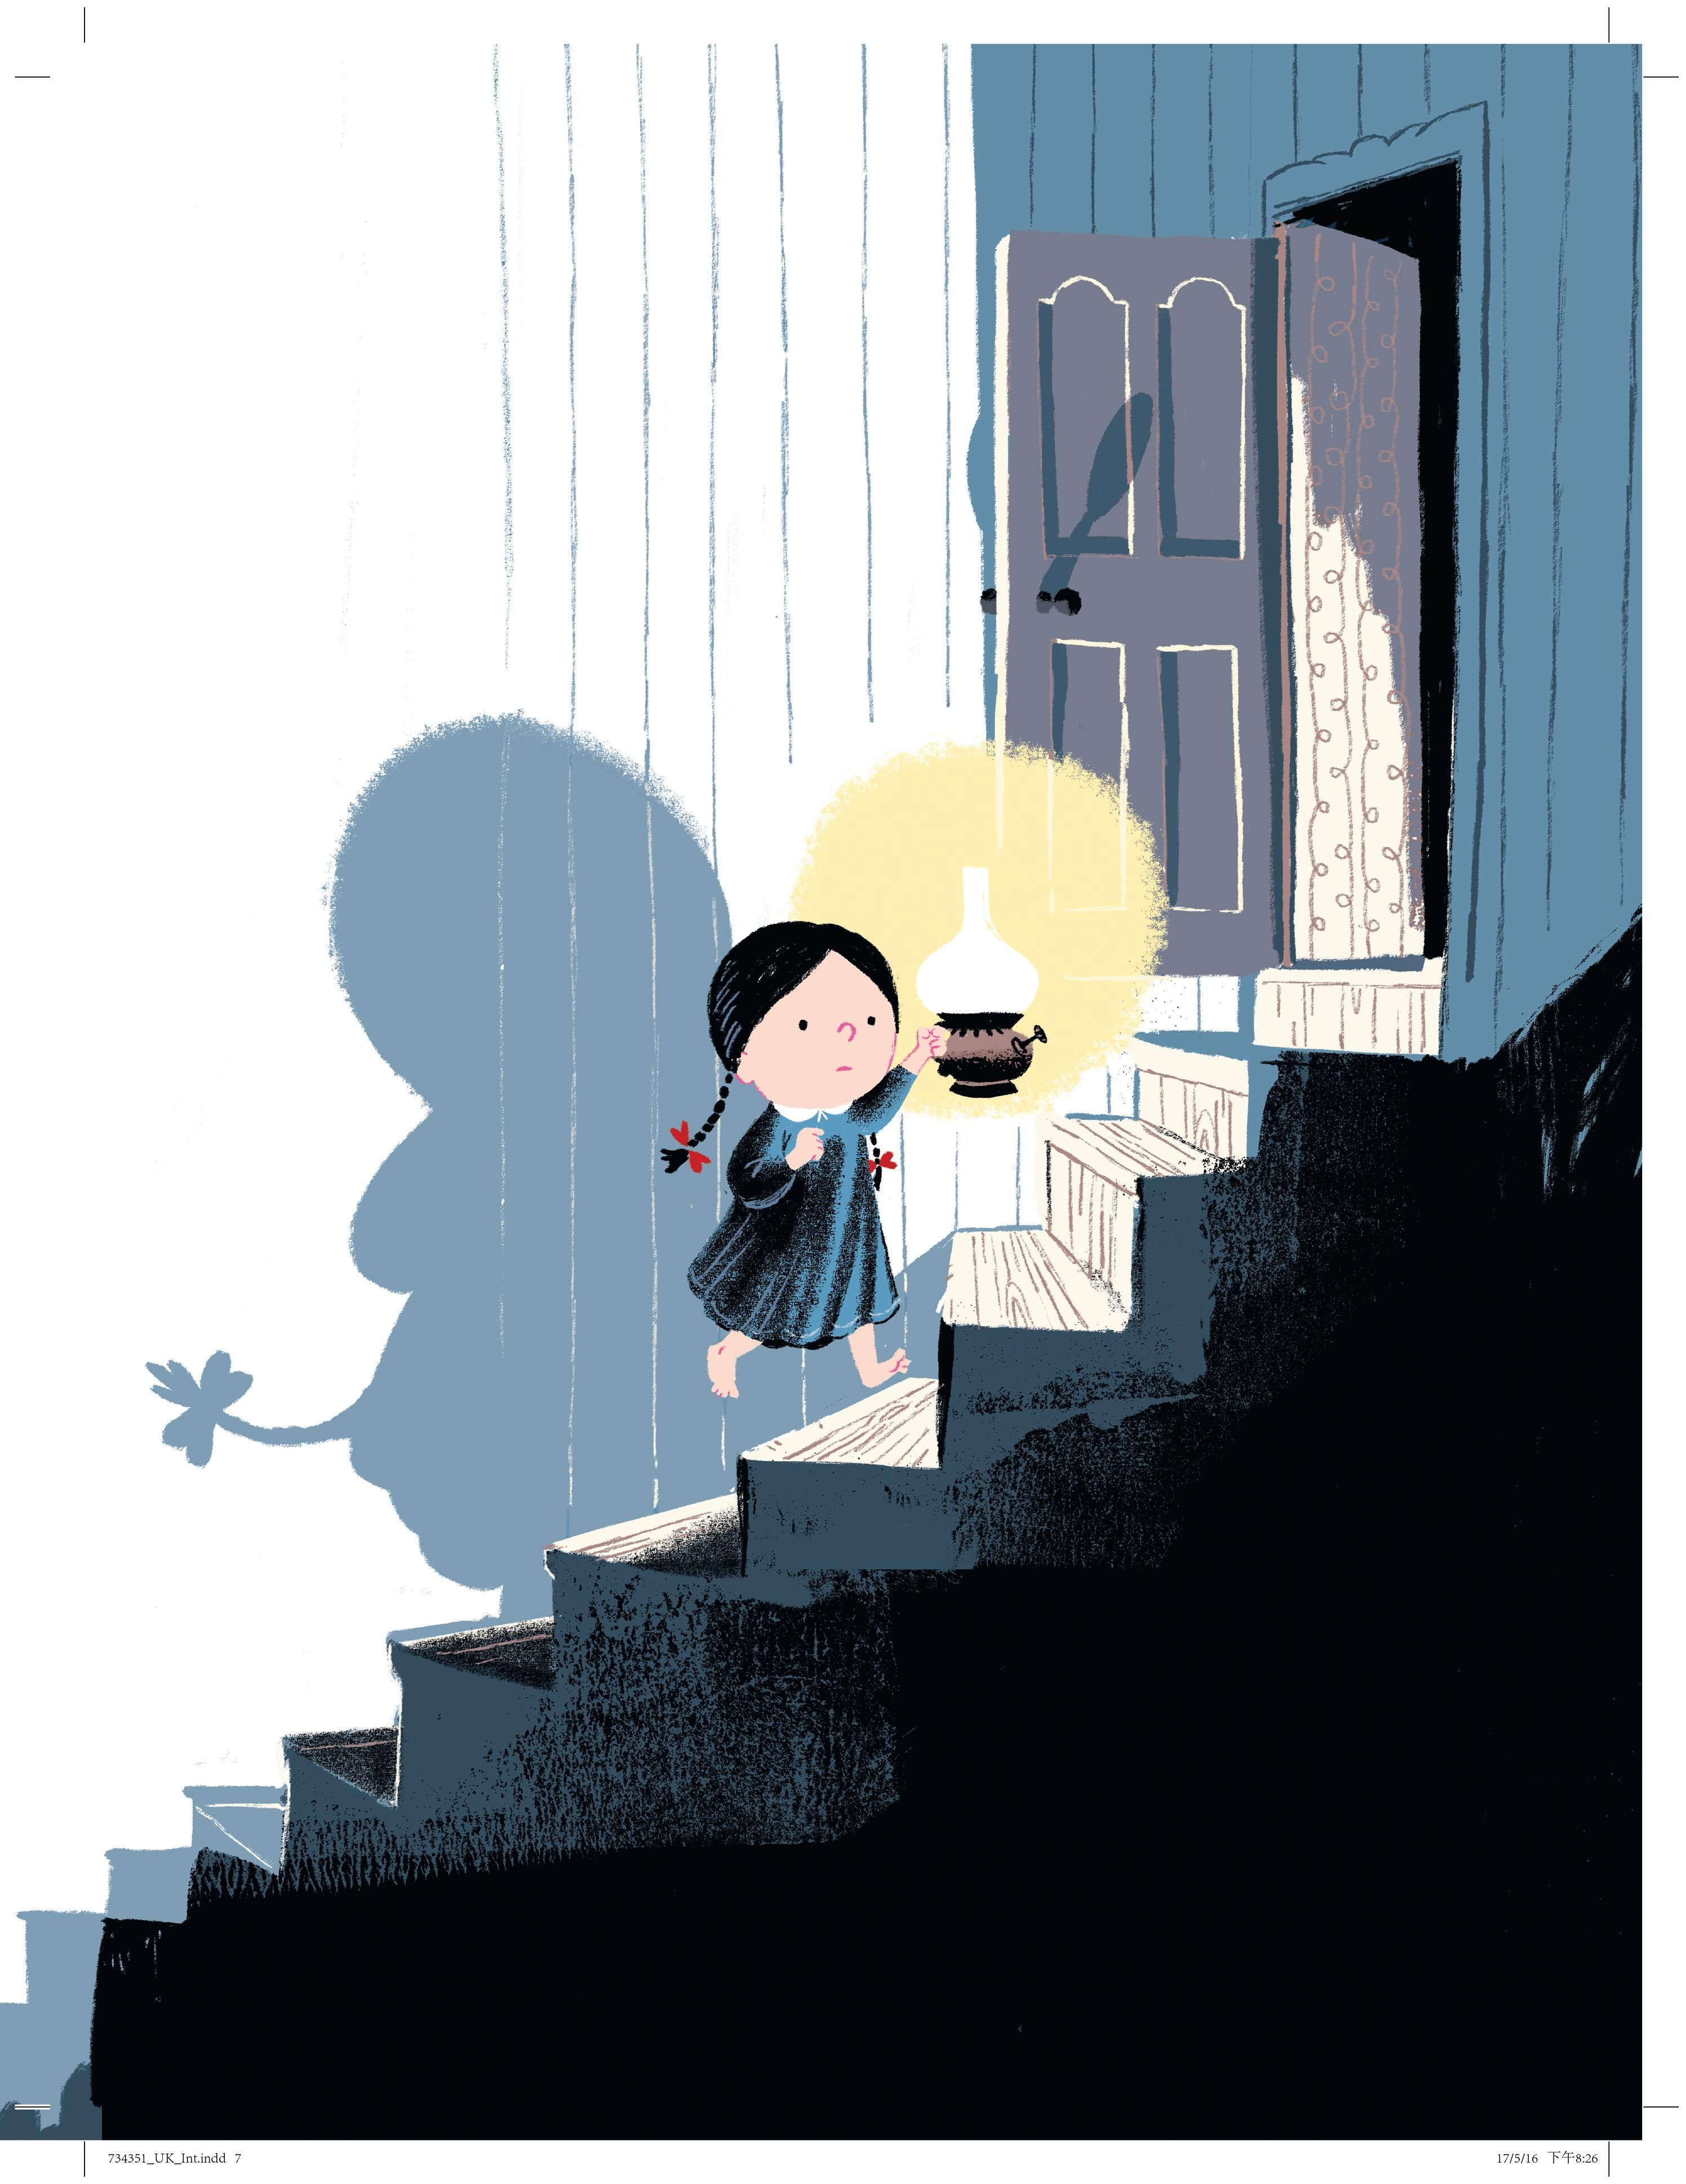 Pin On Storybook Illustrations